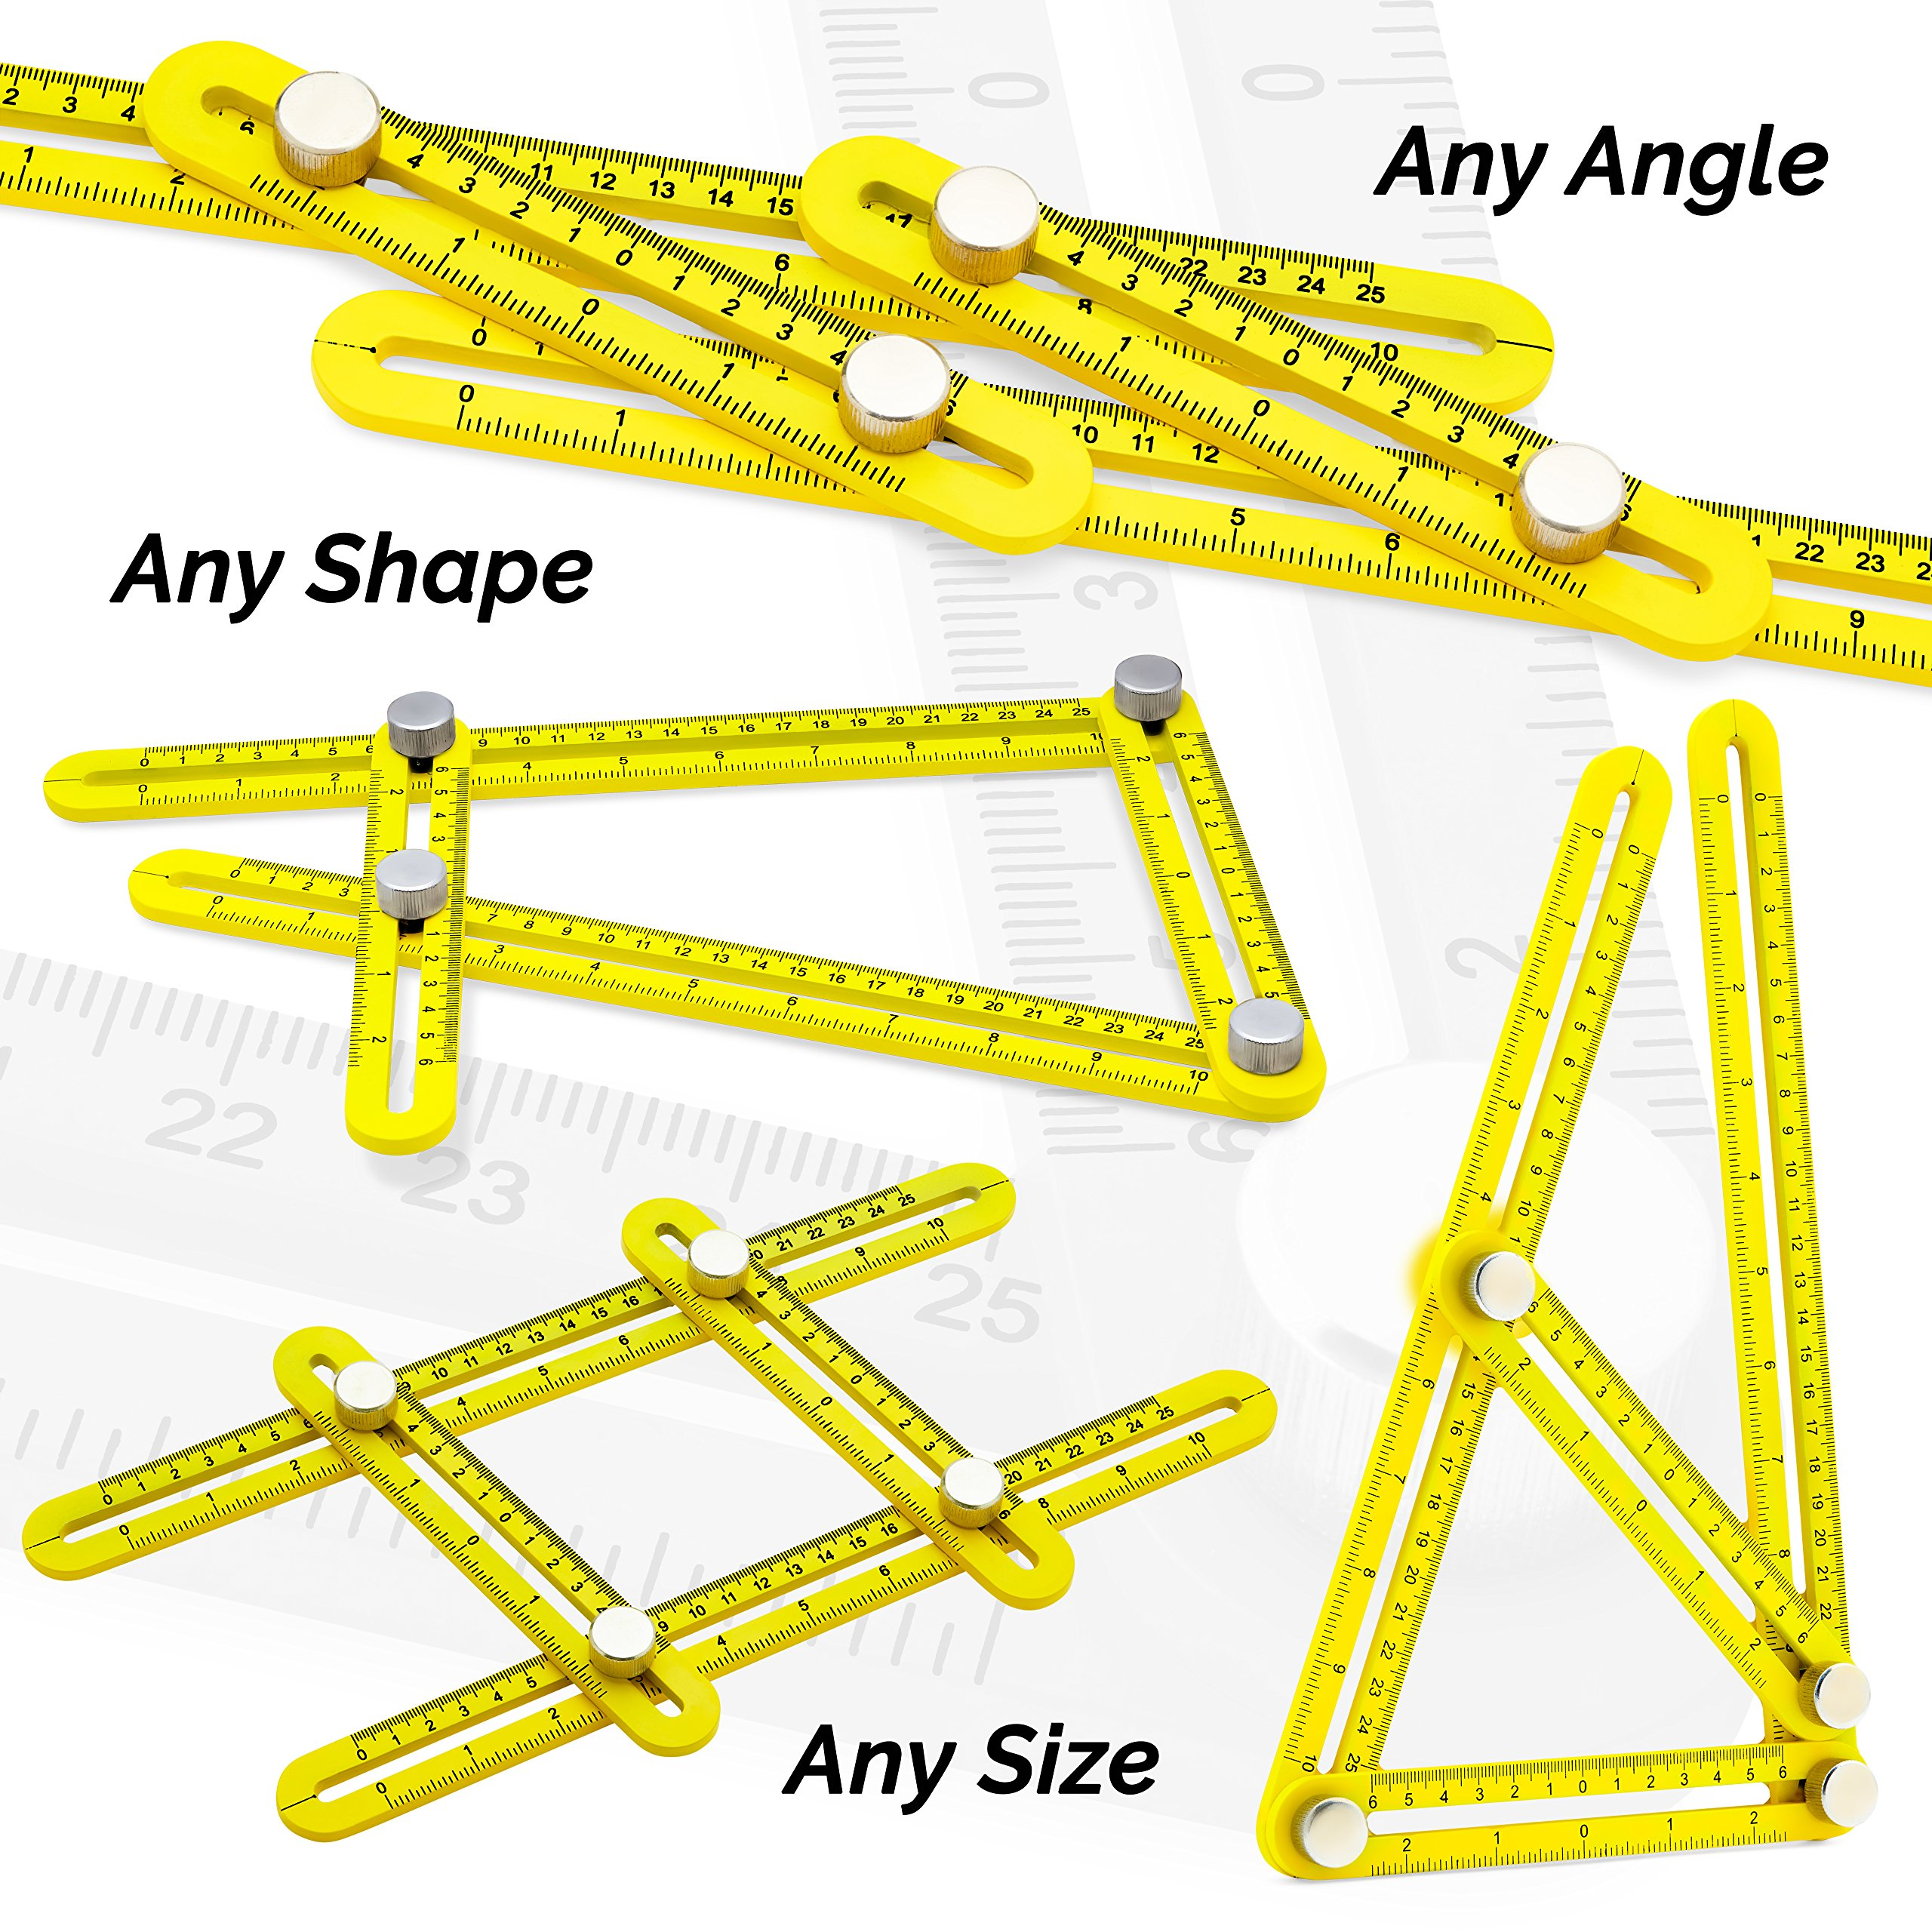 Universal Angularizer Ruler and Multi-Angle Measuring Tool in Yellow Metal - Template Tool Makes Great Gifts for Men Him Husband Dad Father DIY by Premium Rhino (Image #7)